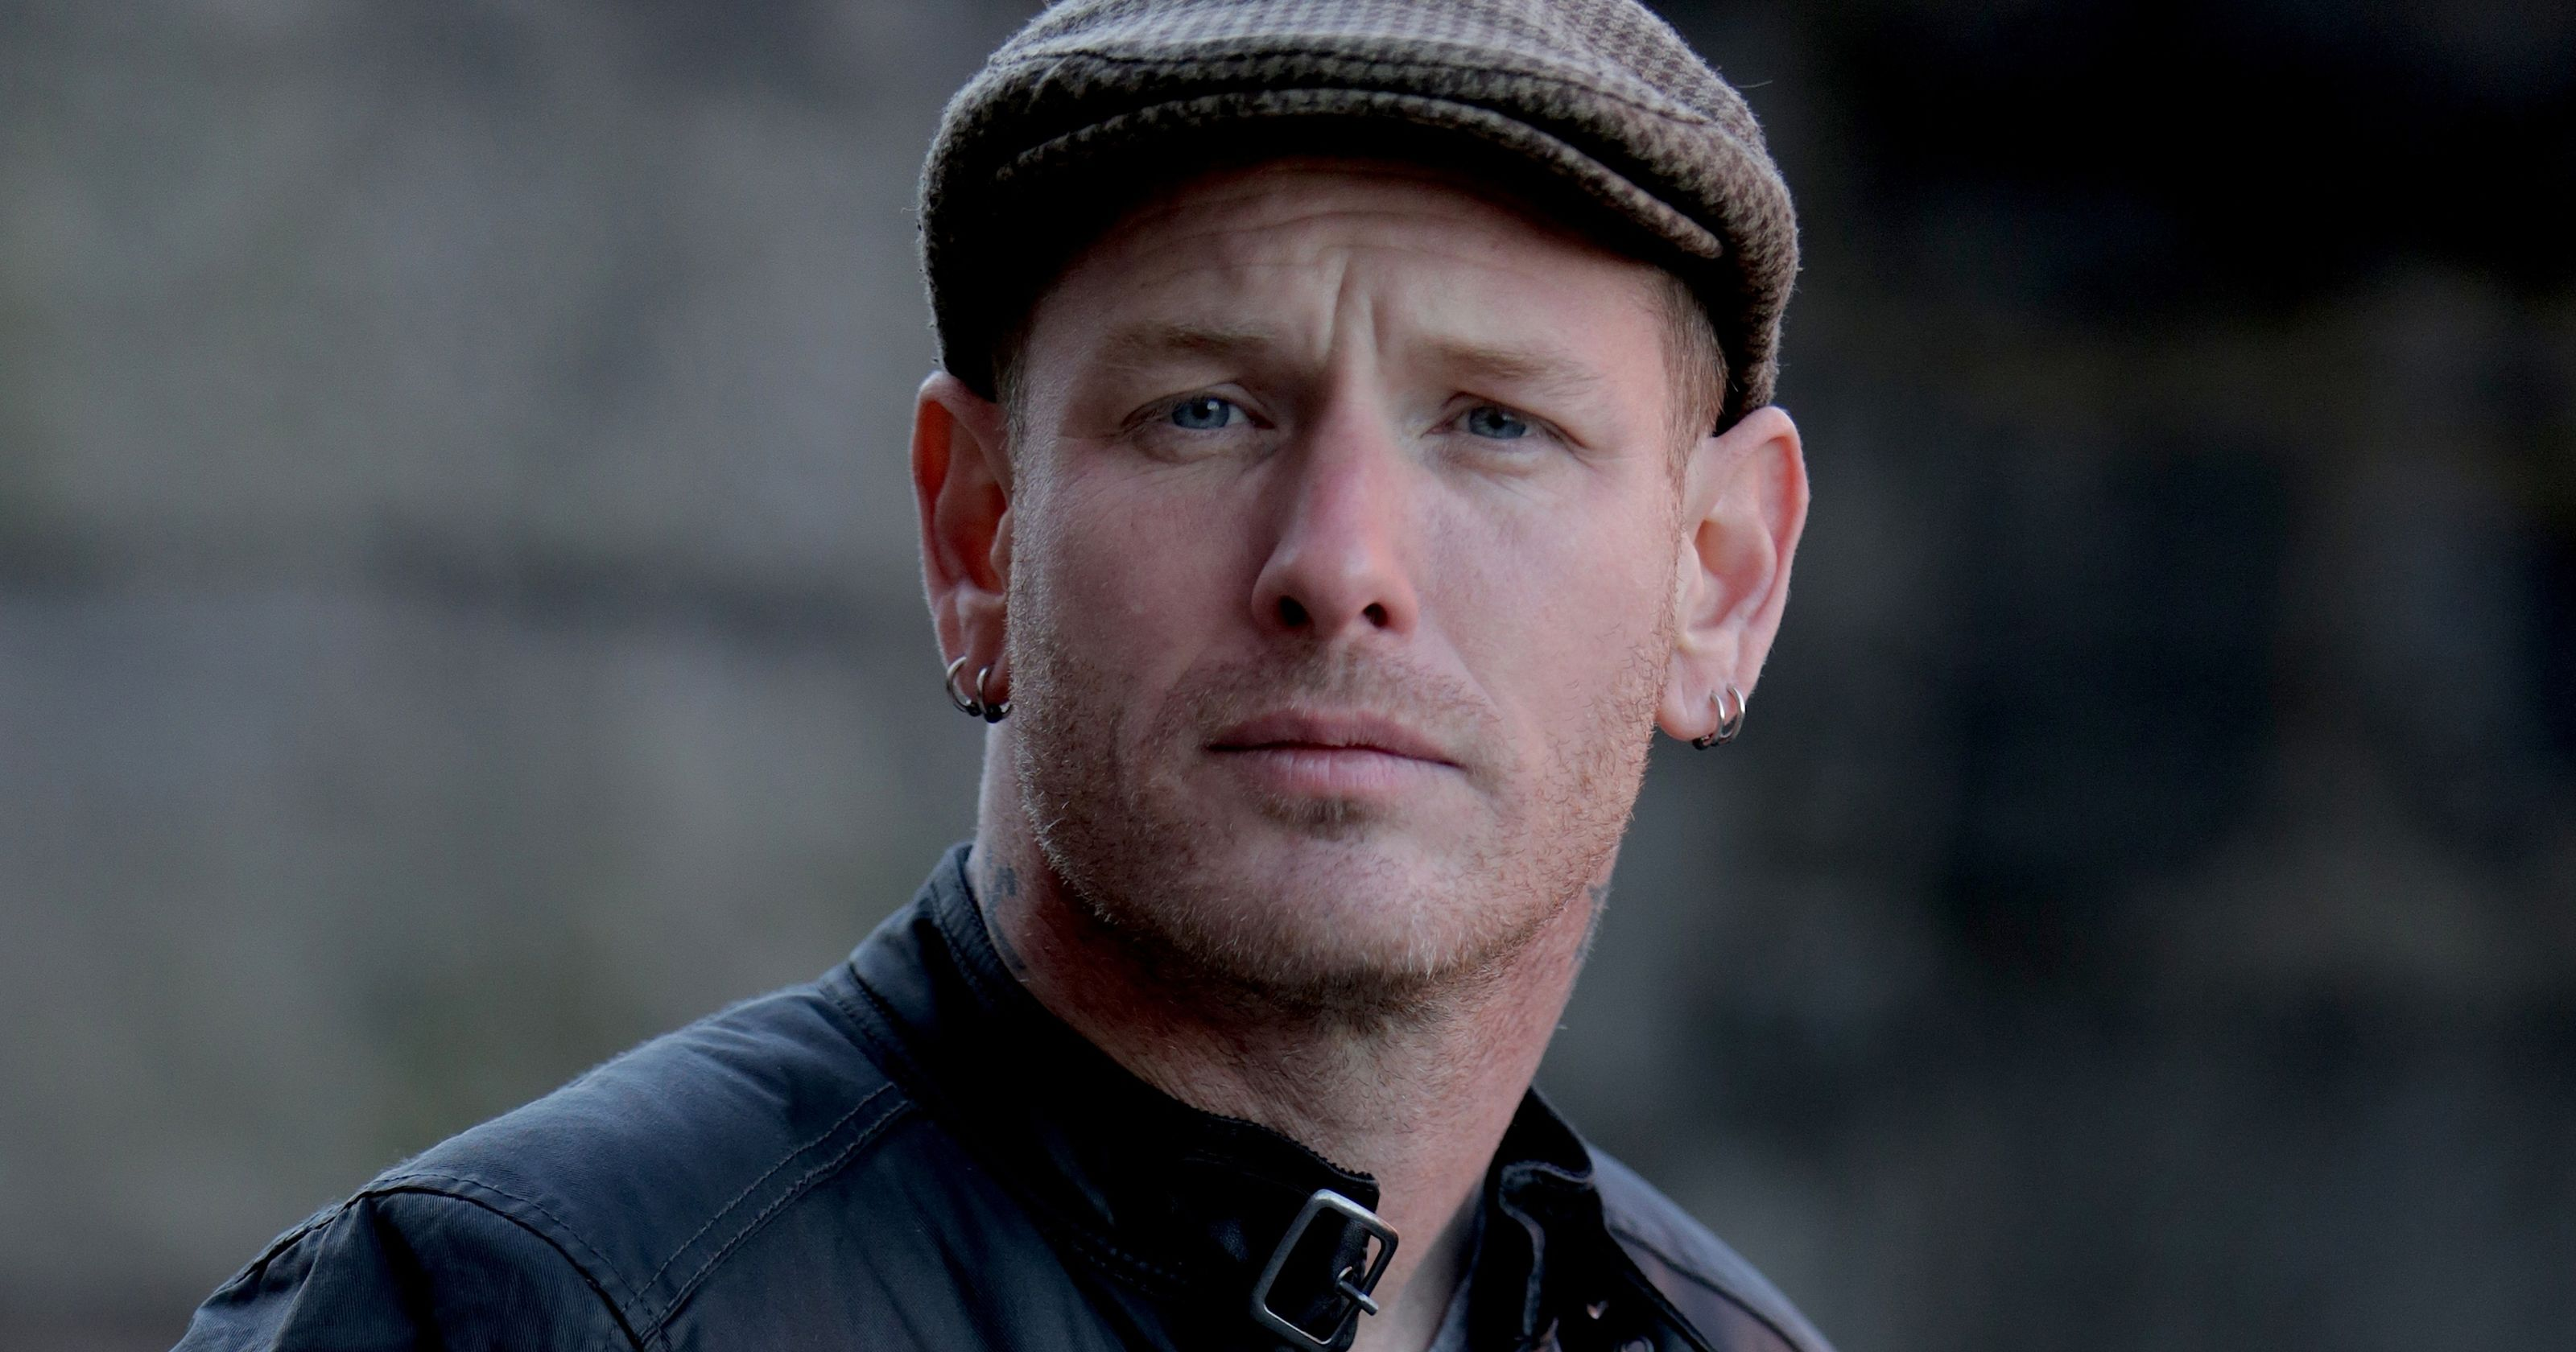 SLIPKNOTs Corey Taylor Posts Powerful Video on Black 3200x1680